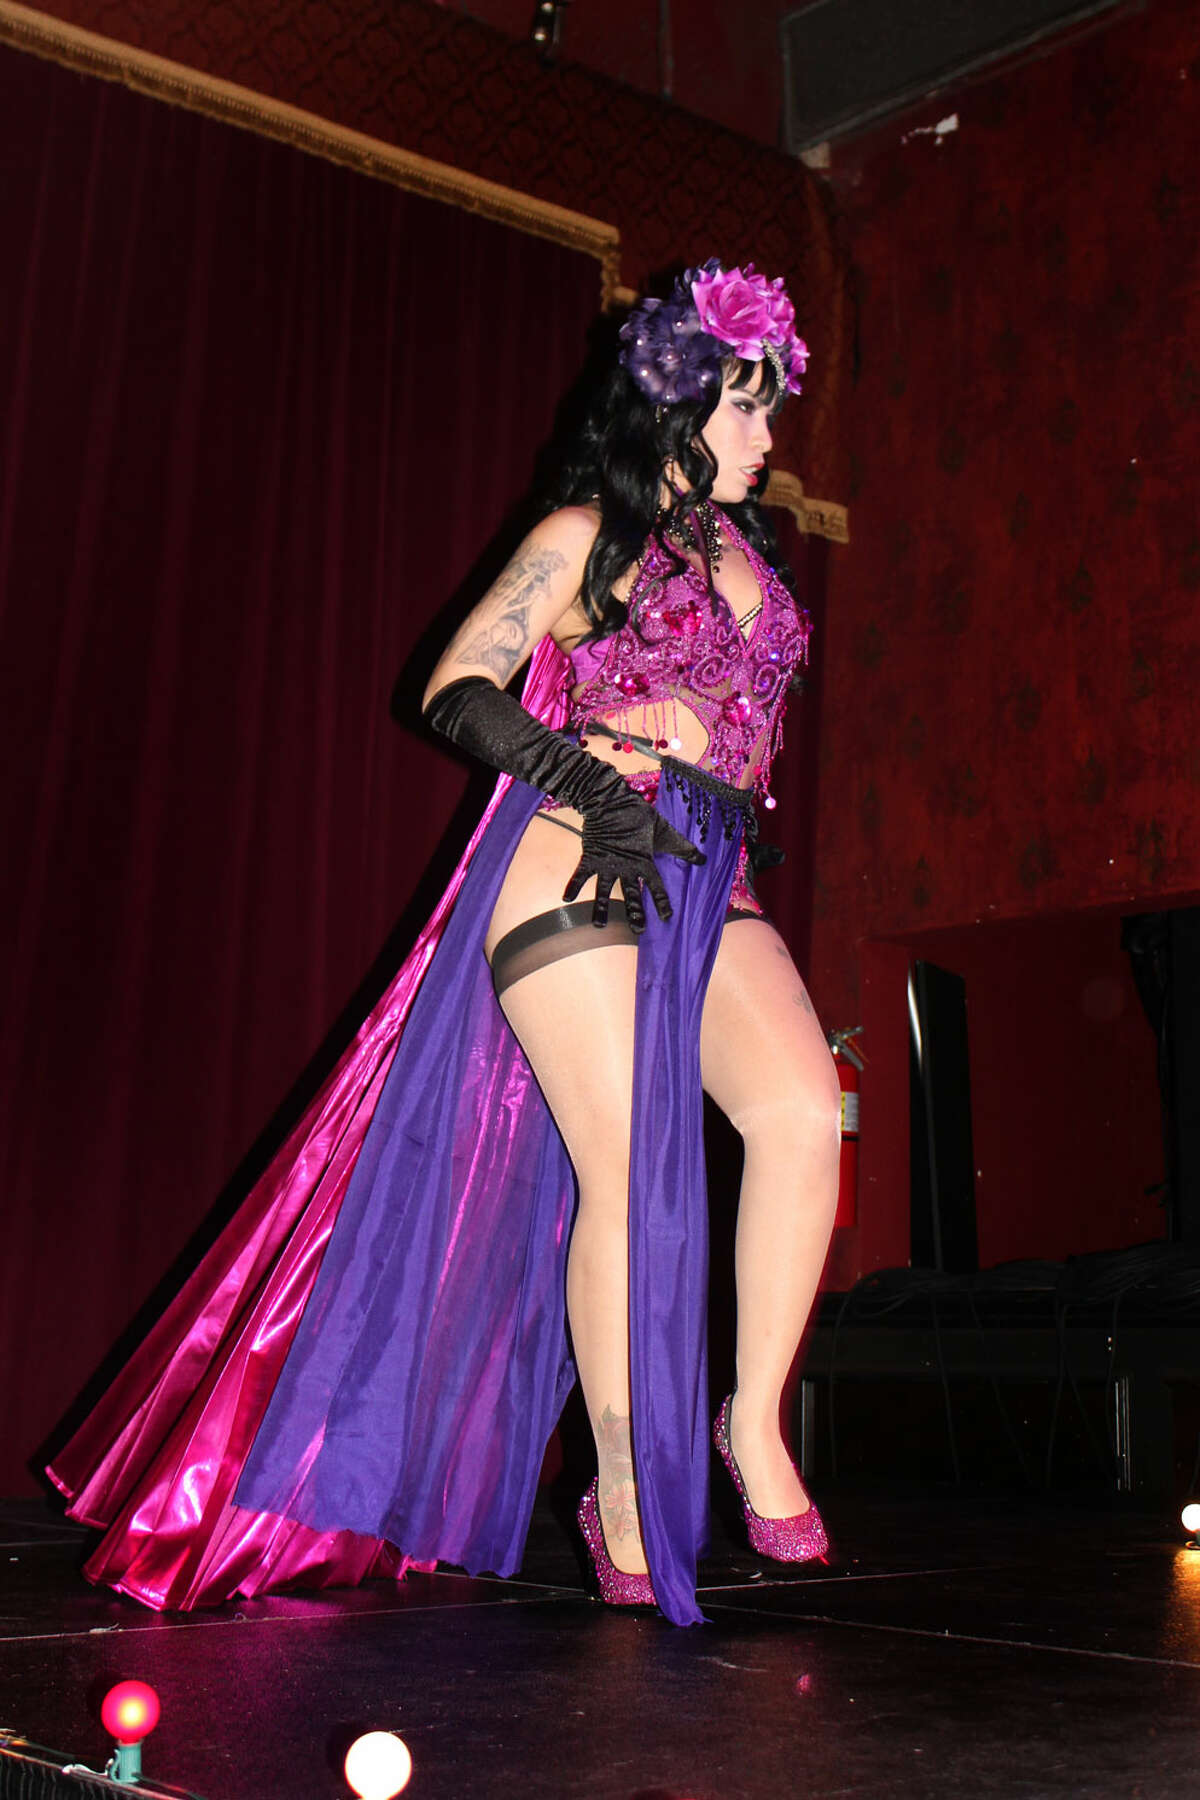 2nd Annual Houston Burlesque Festival at House of Blues